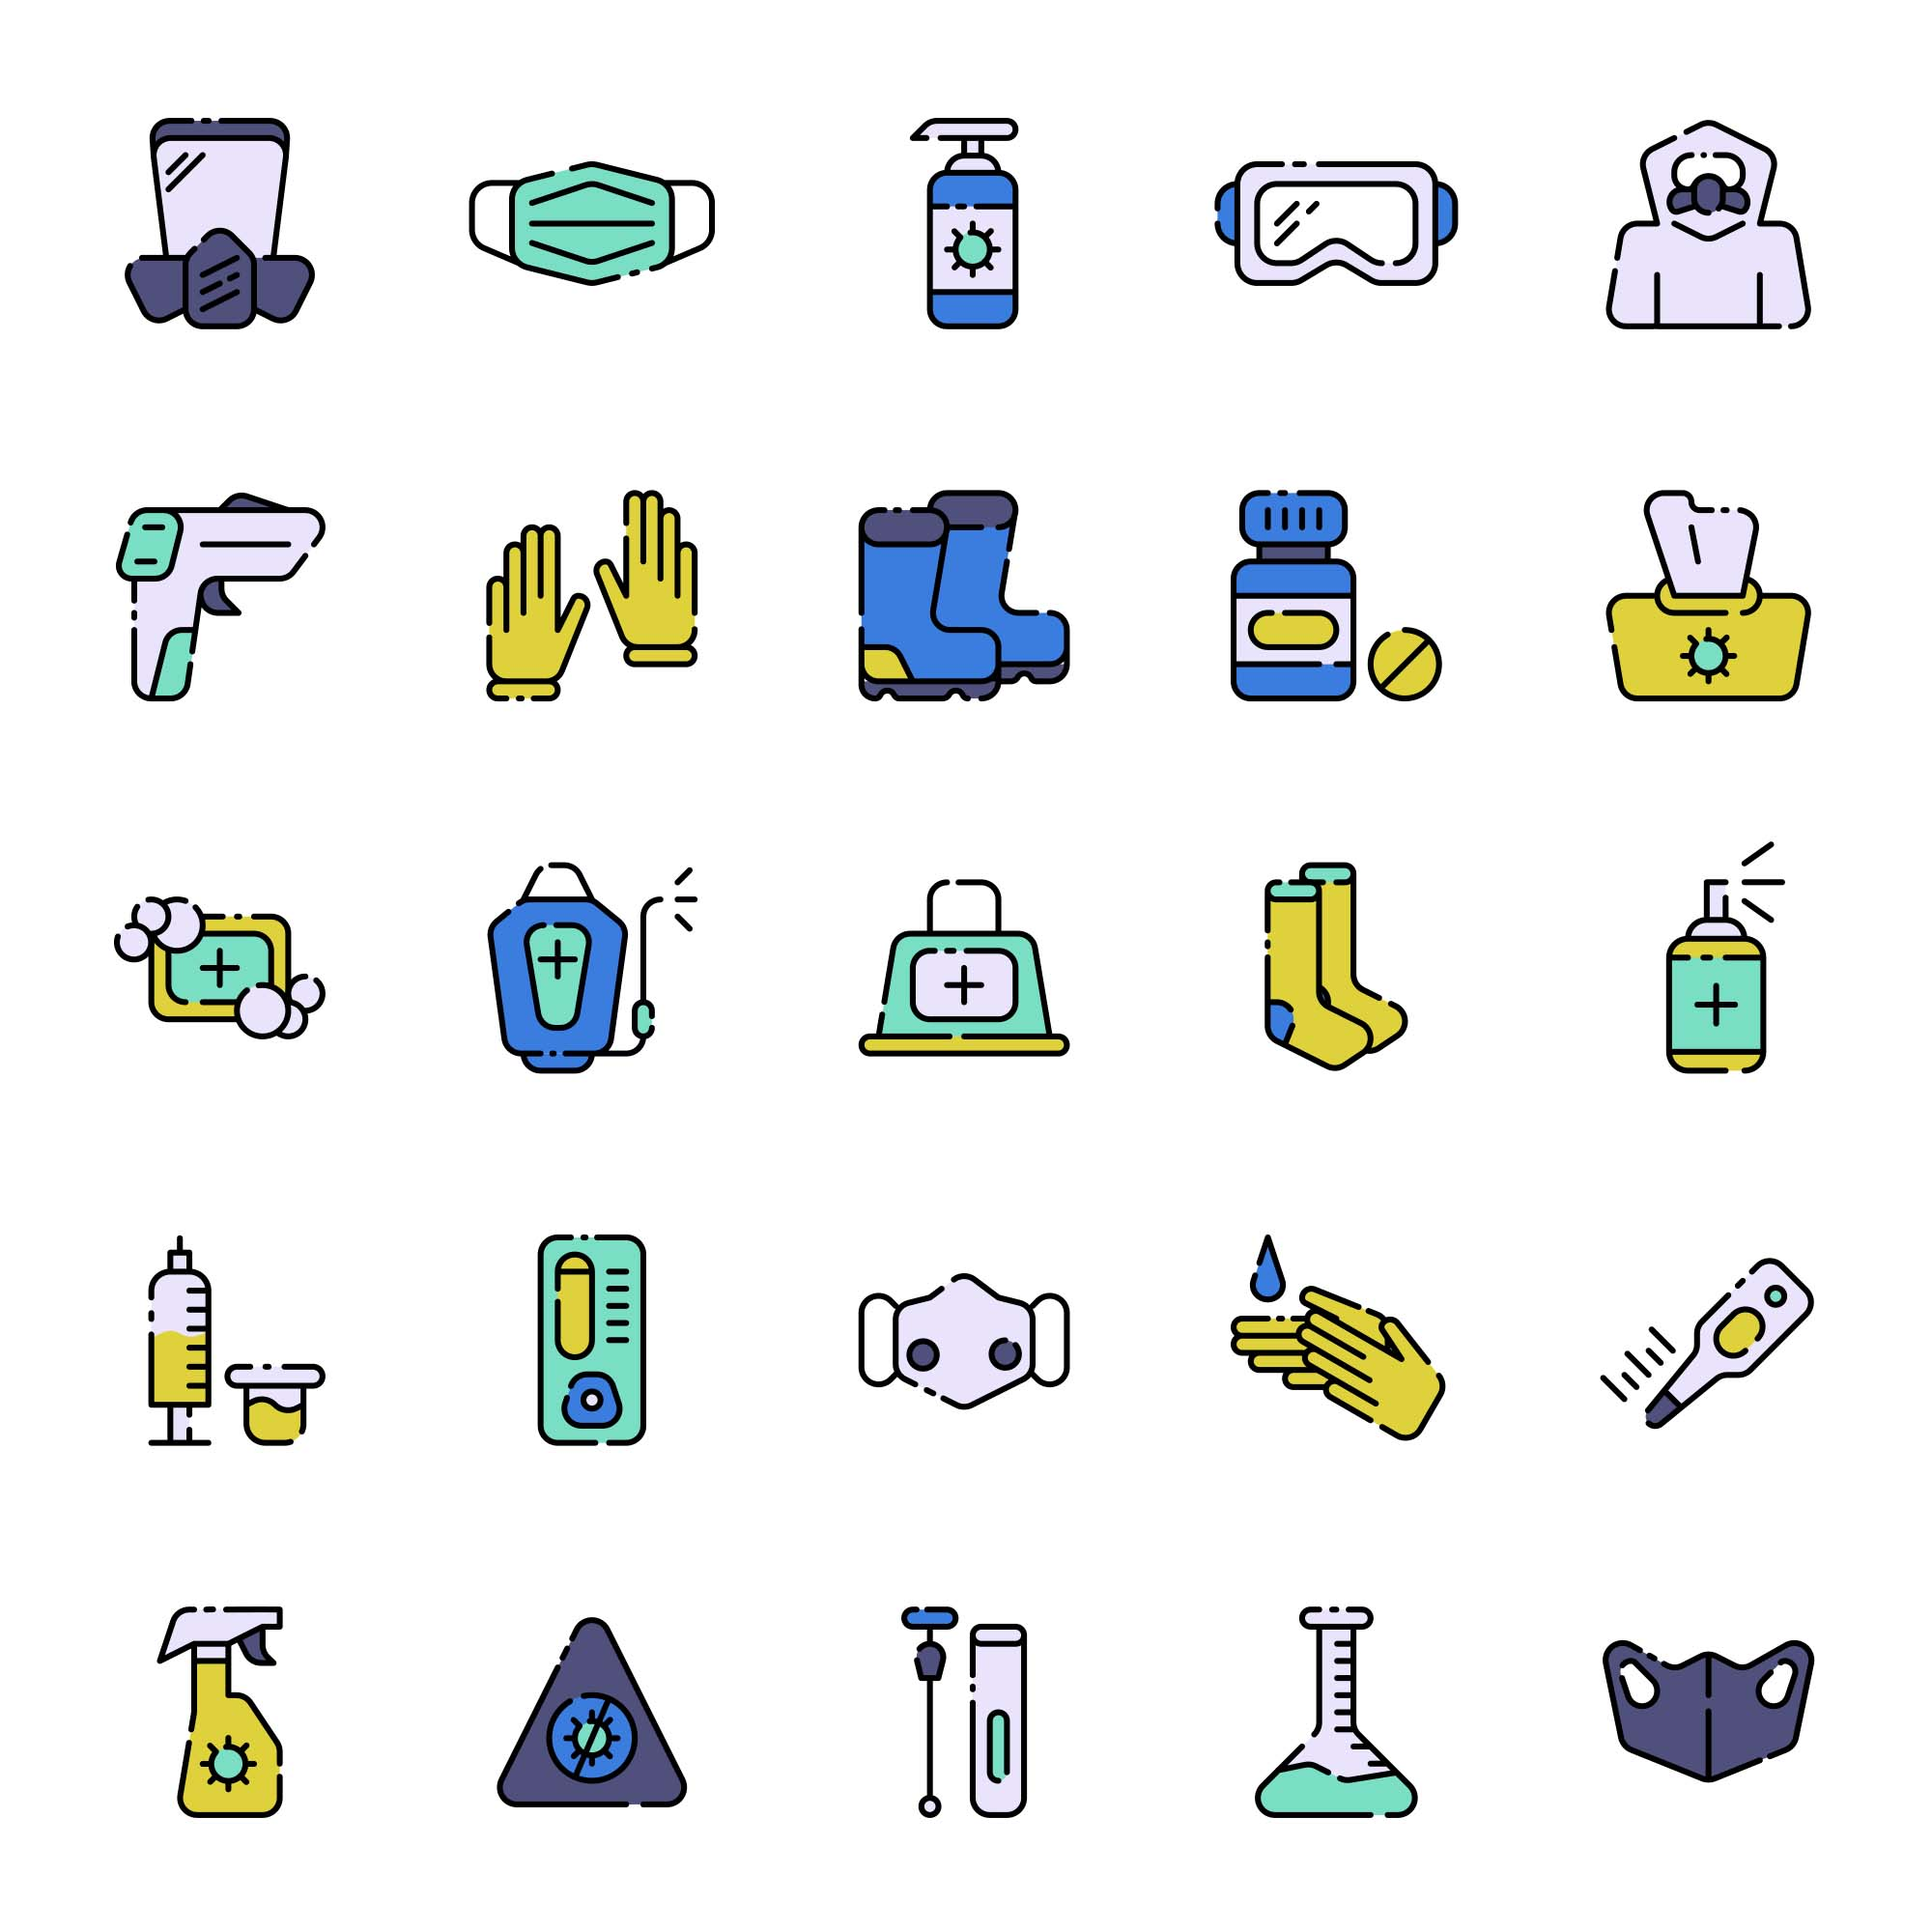 Covid-19 Protection Equipment Icons